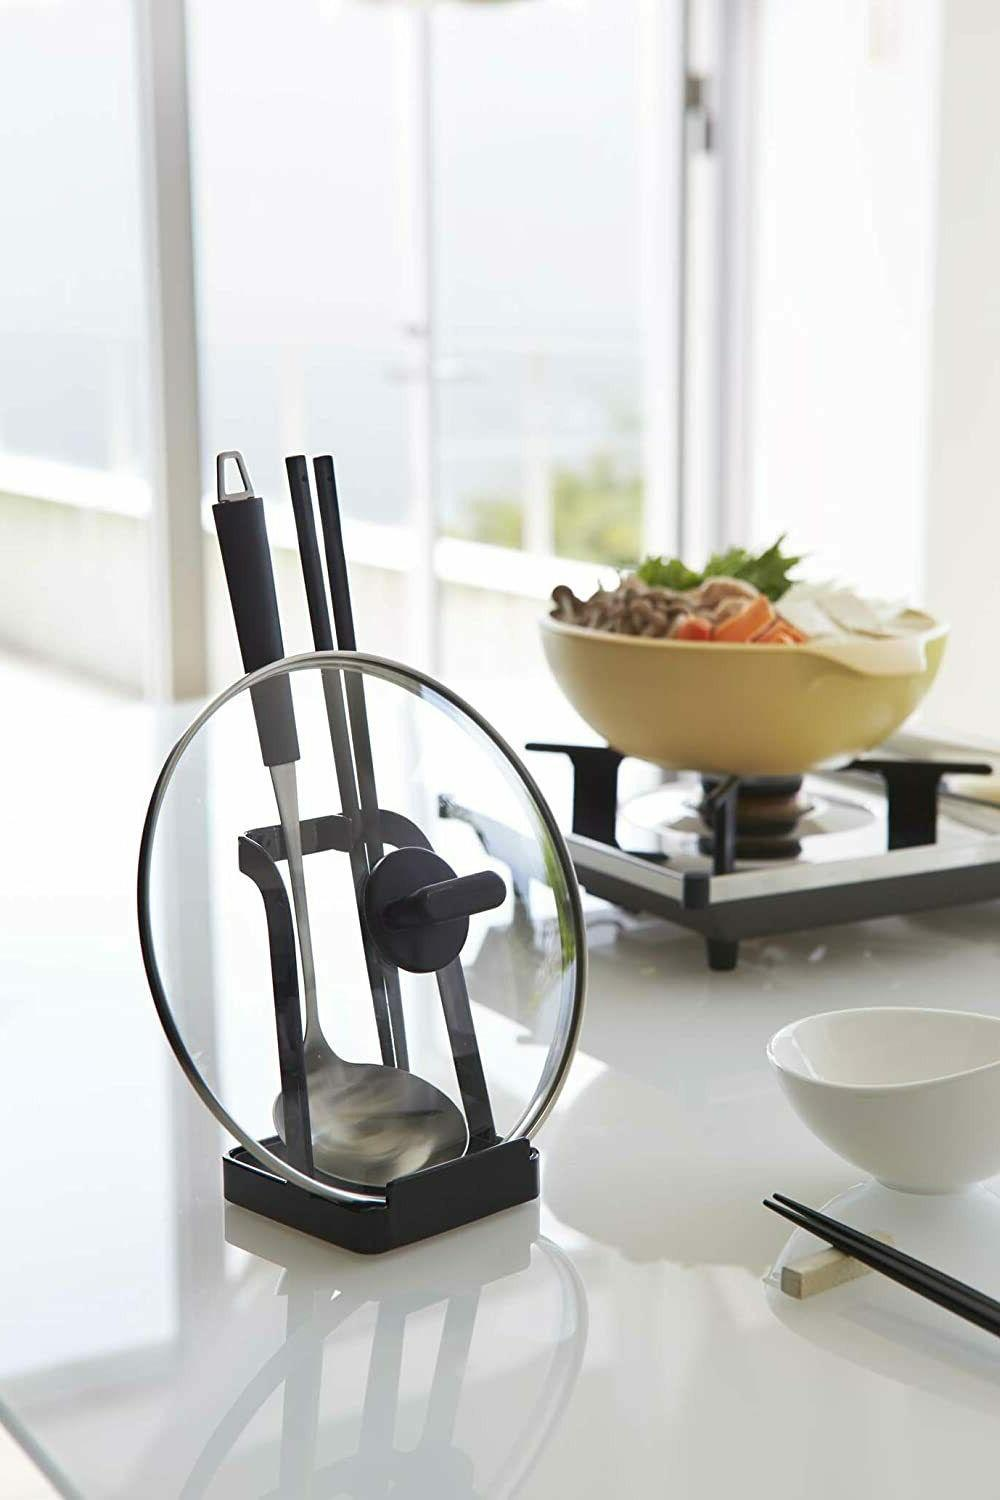 YAMAZAKI Tower Ladle Holder-Lid Stand for Utensils in Black